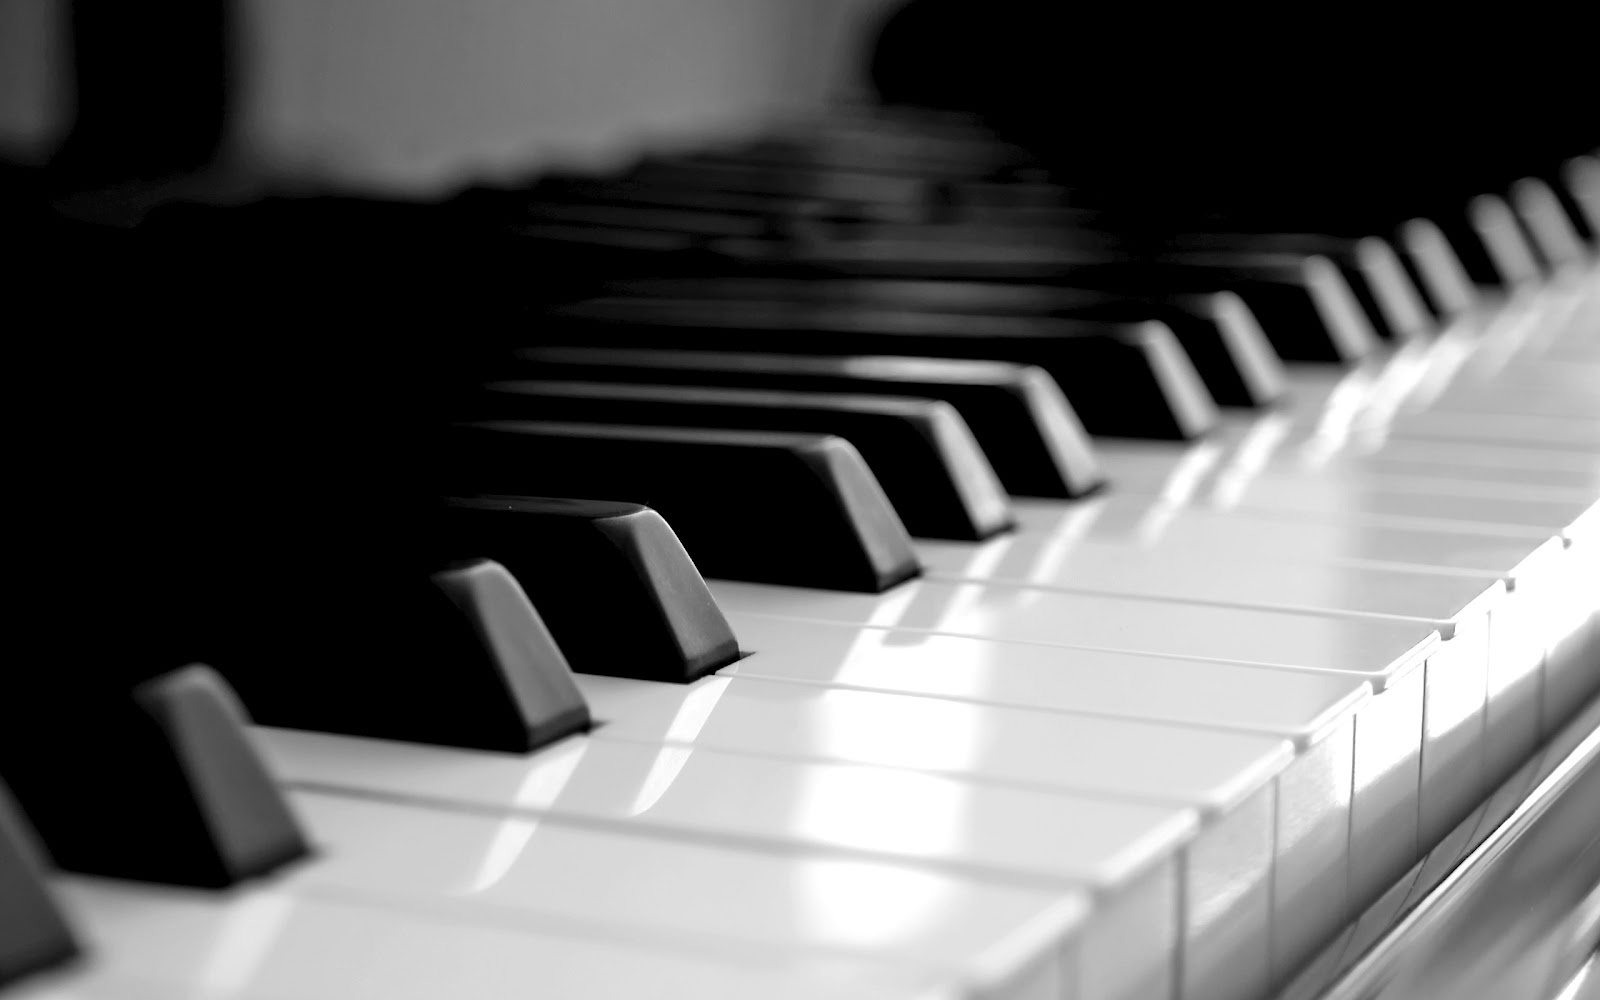 Wallpaper wallpaper piano hd - Cool piano backgrounds ...